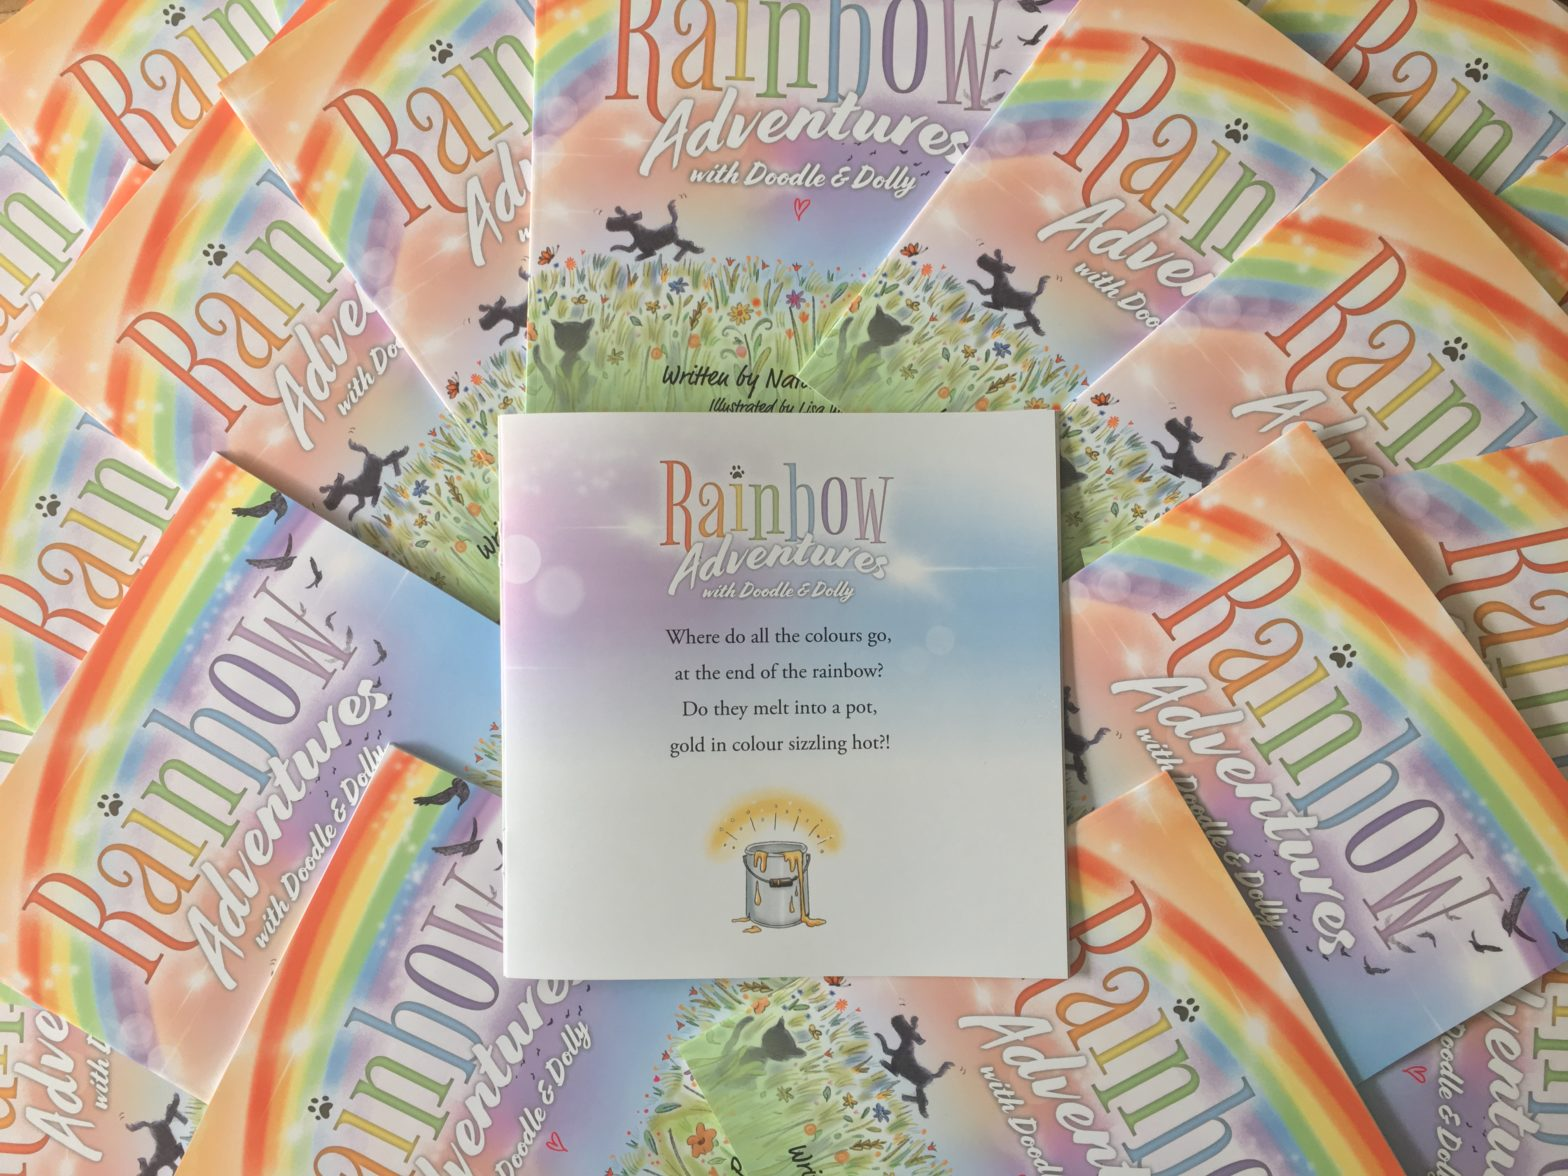 Rainbow Adventures in stores now